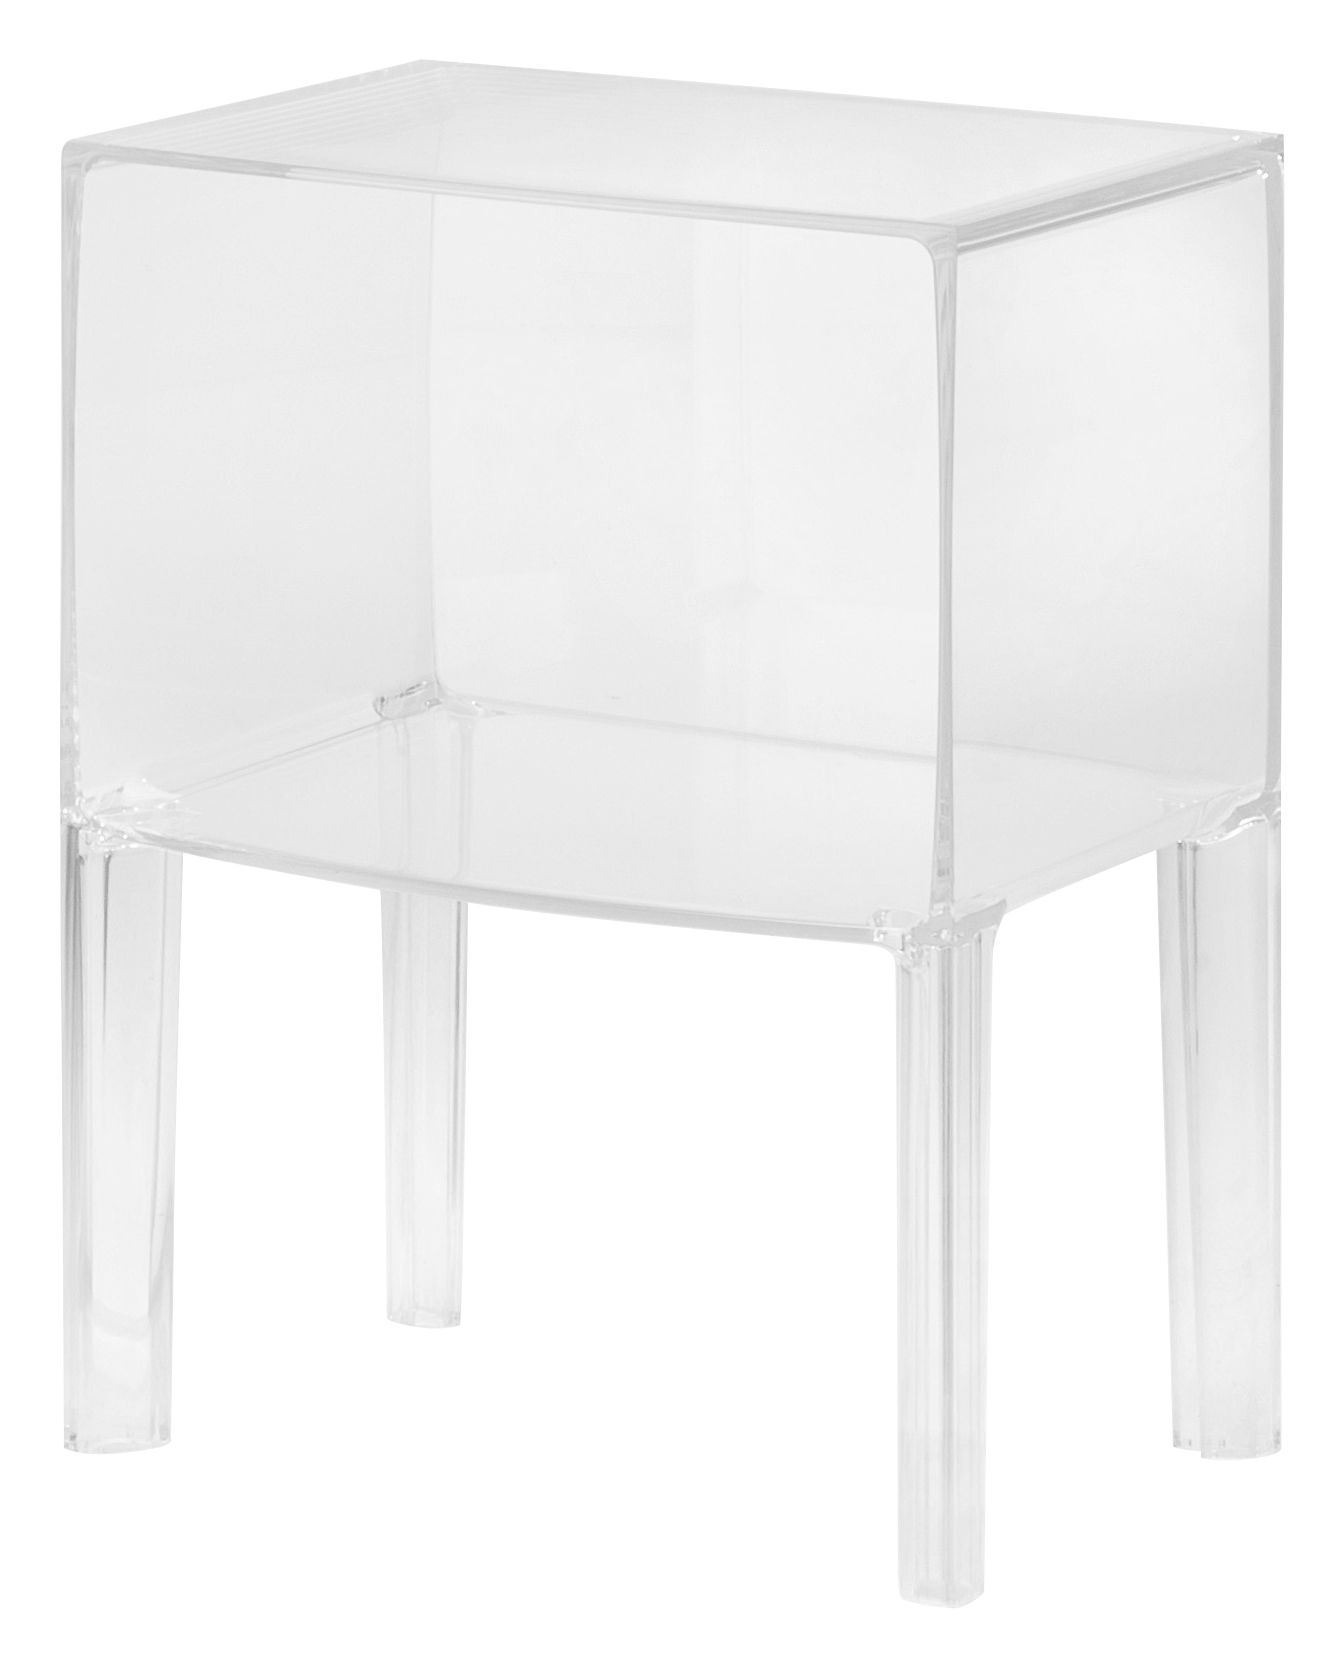 Furniture - Bedside & End tables - Small Ghost Buster Bedside table by Kartell - Cristal - PMMA